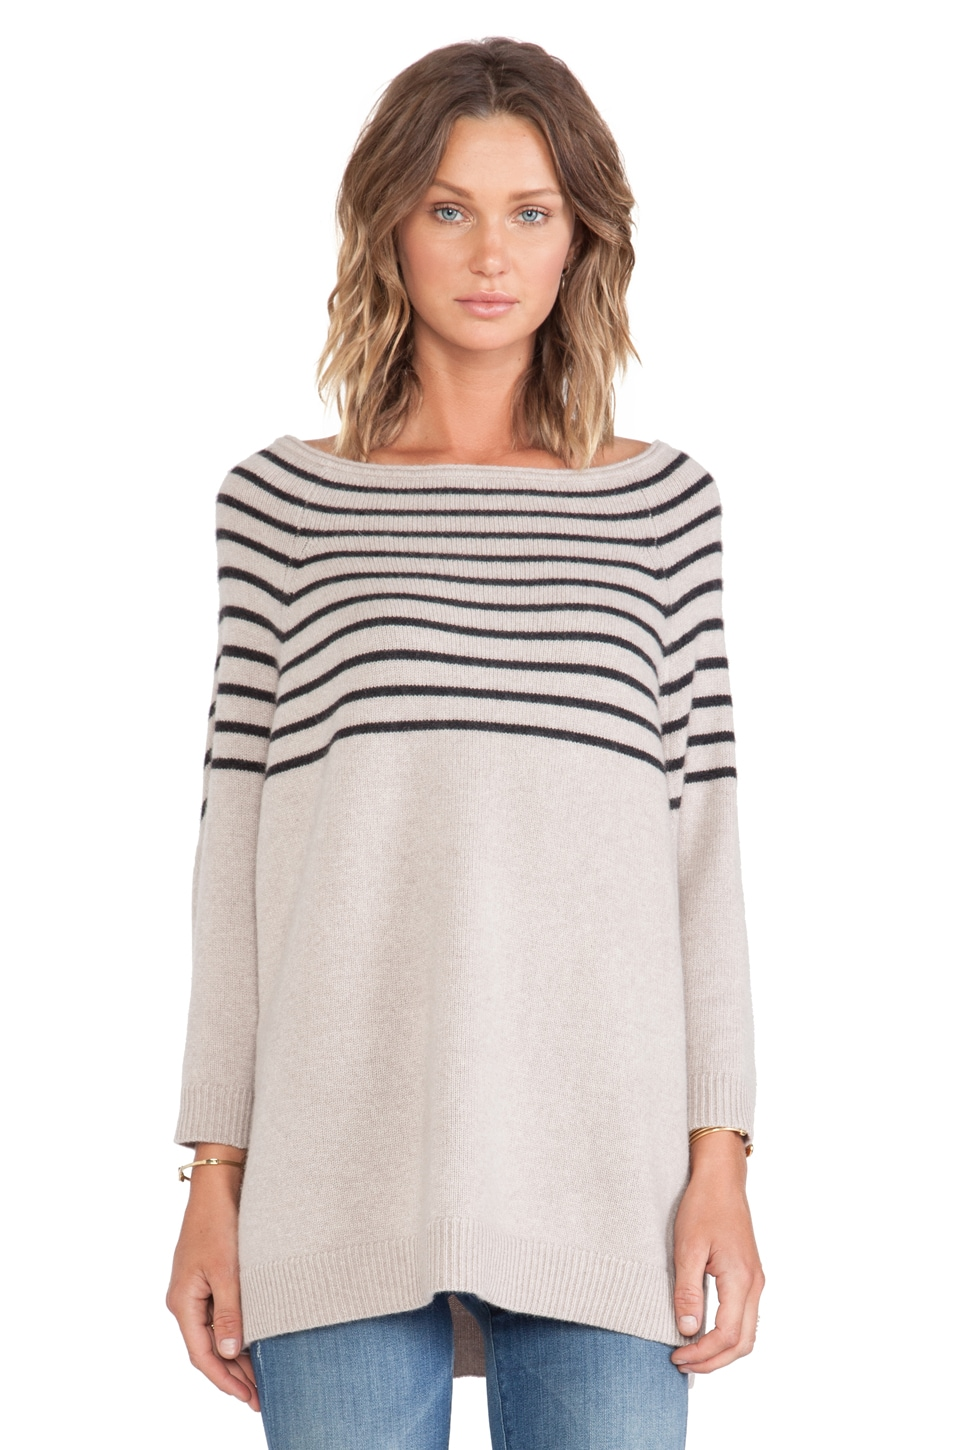 360 Sweater Margot Sweater in Sable & Cinder Stripe